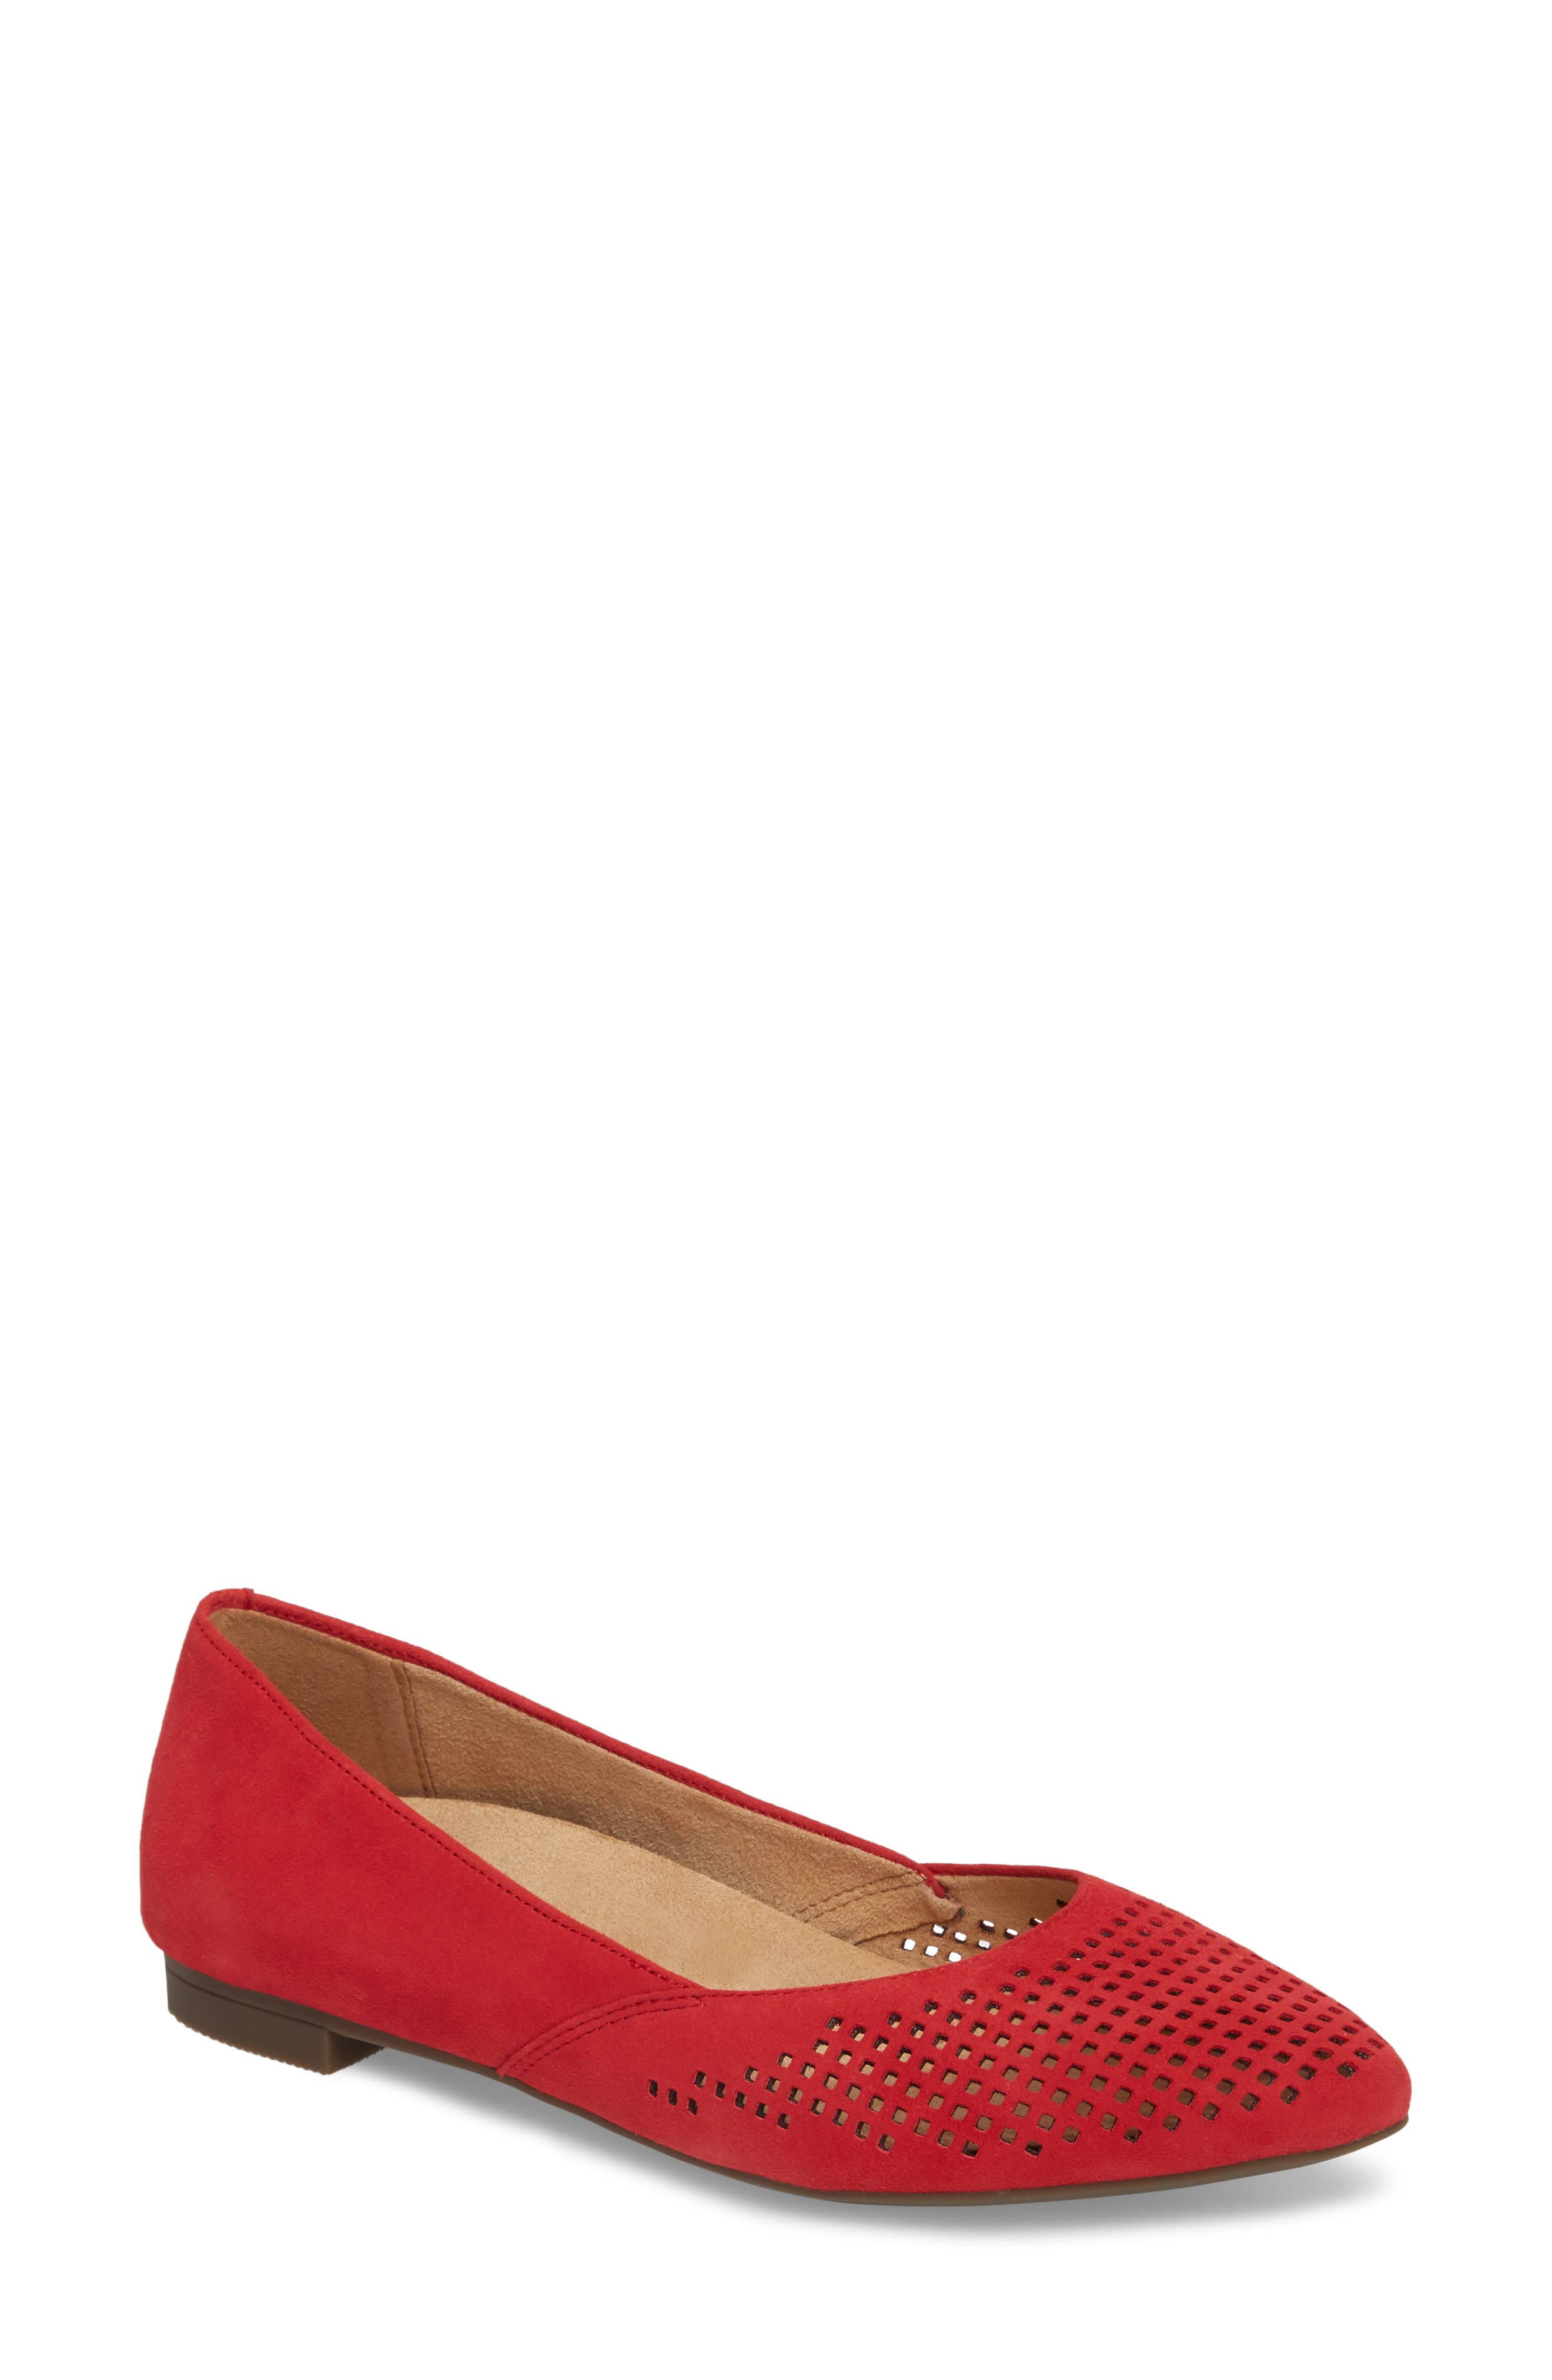 Alternate Image 1 Selected - Vionic Posey Flat (Women)